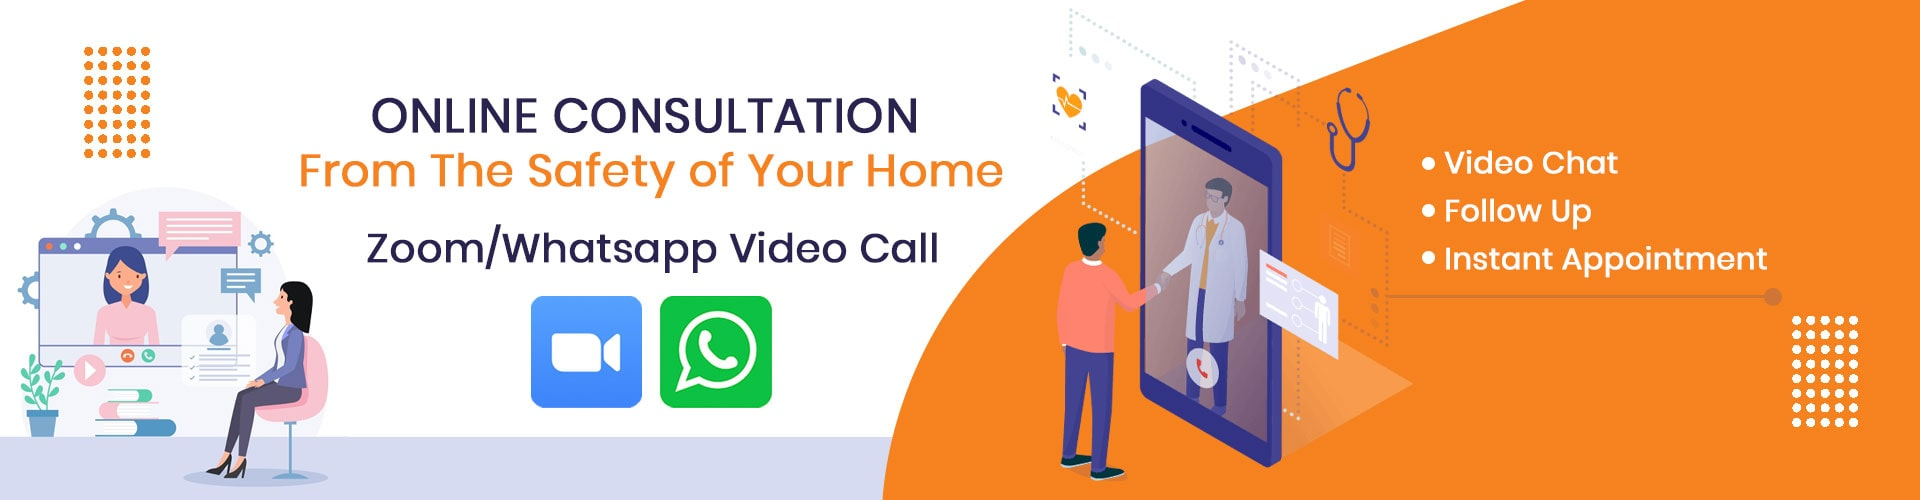 Online Consultation from the safety of your home